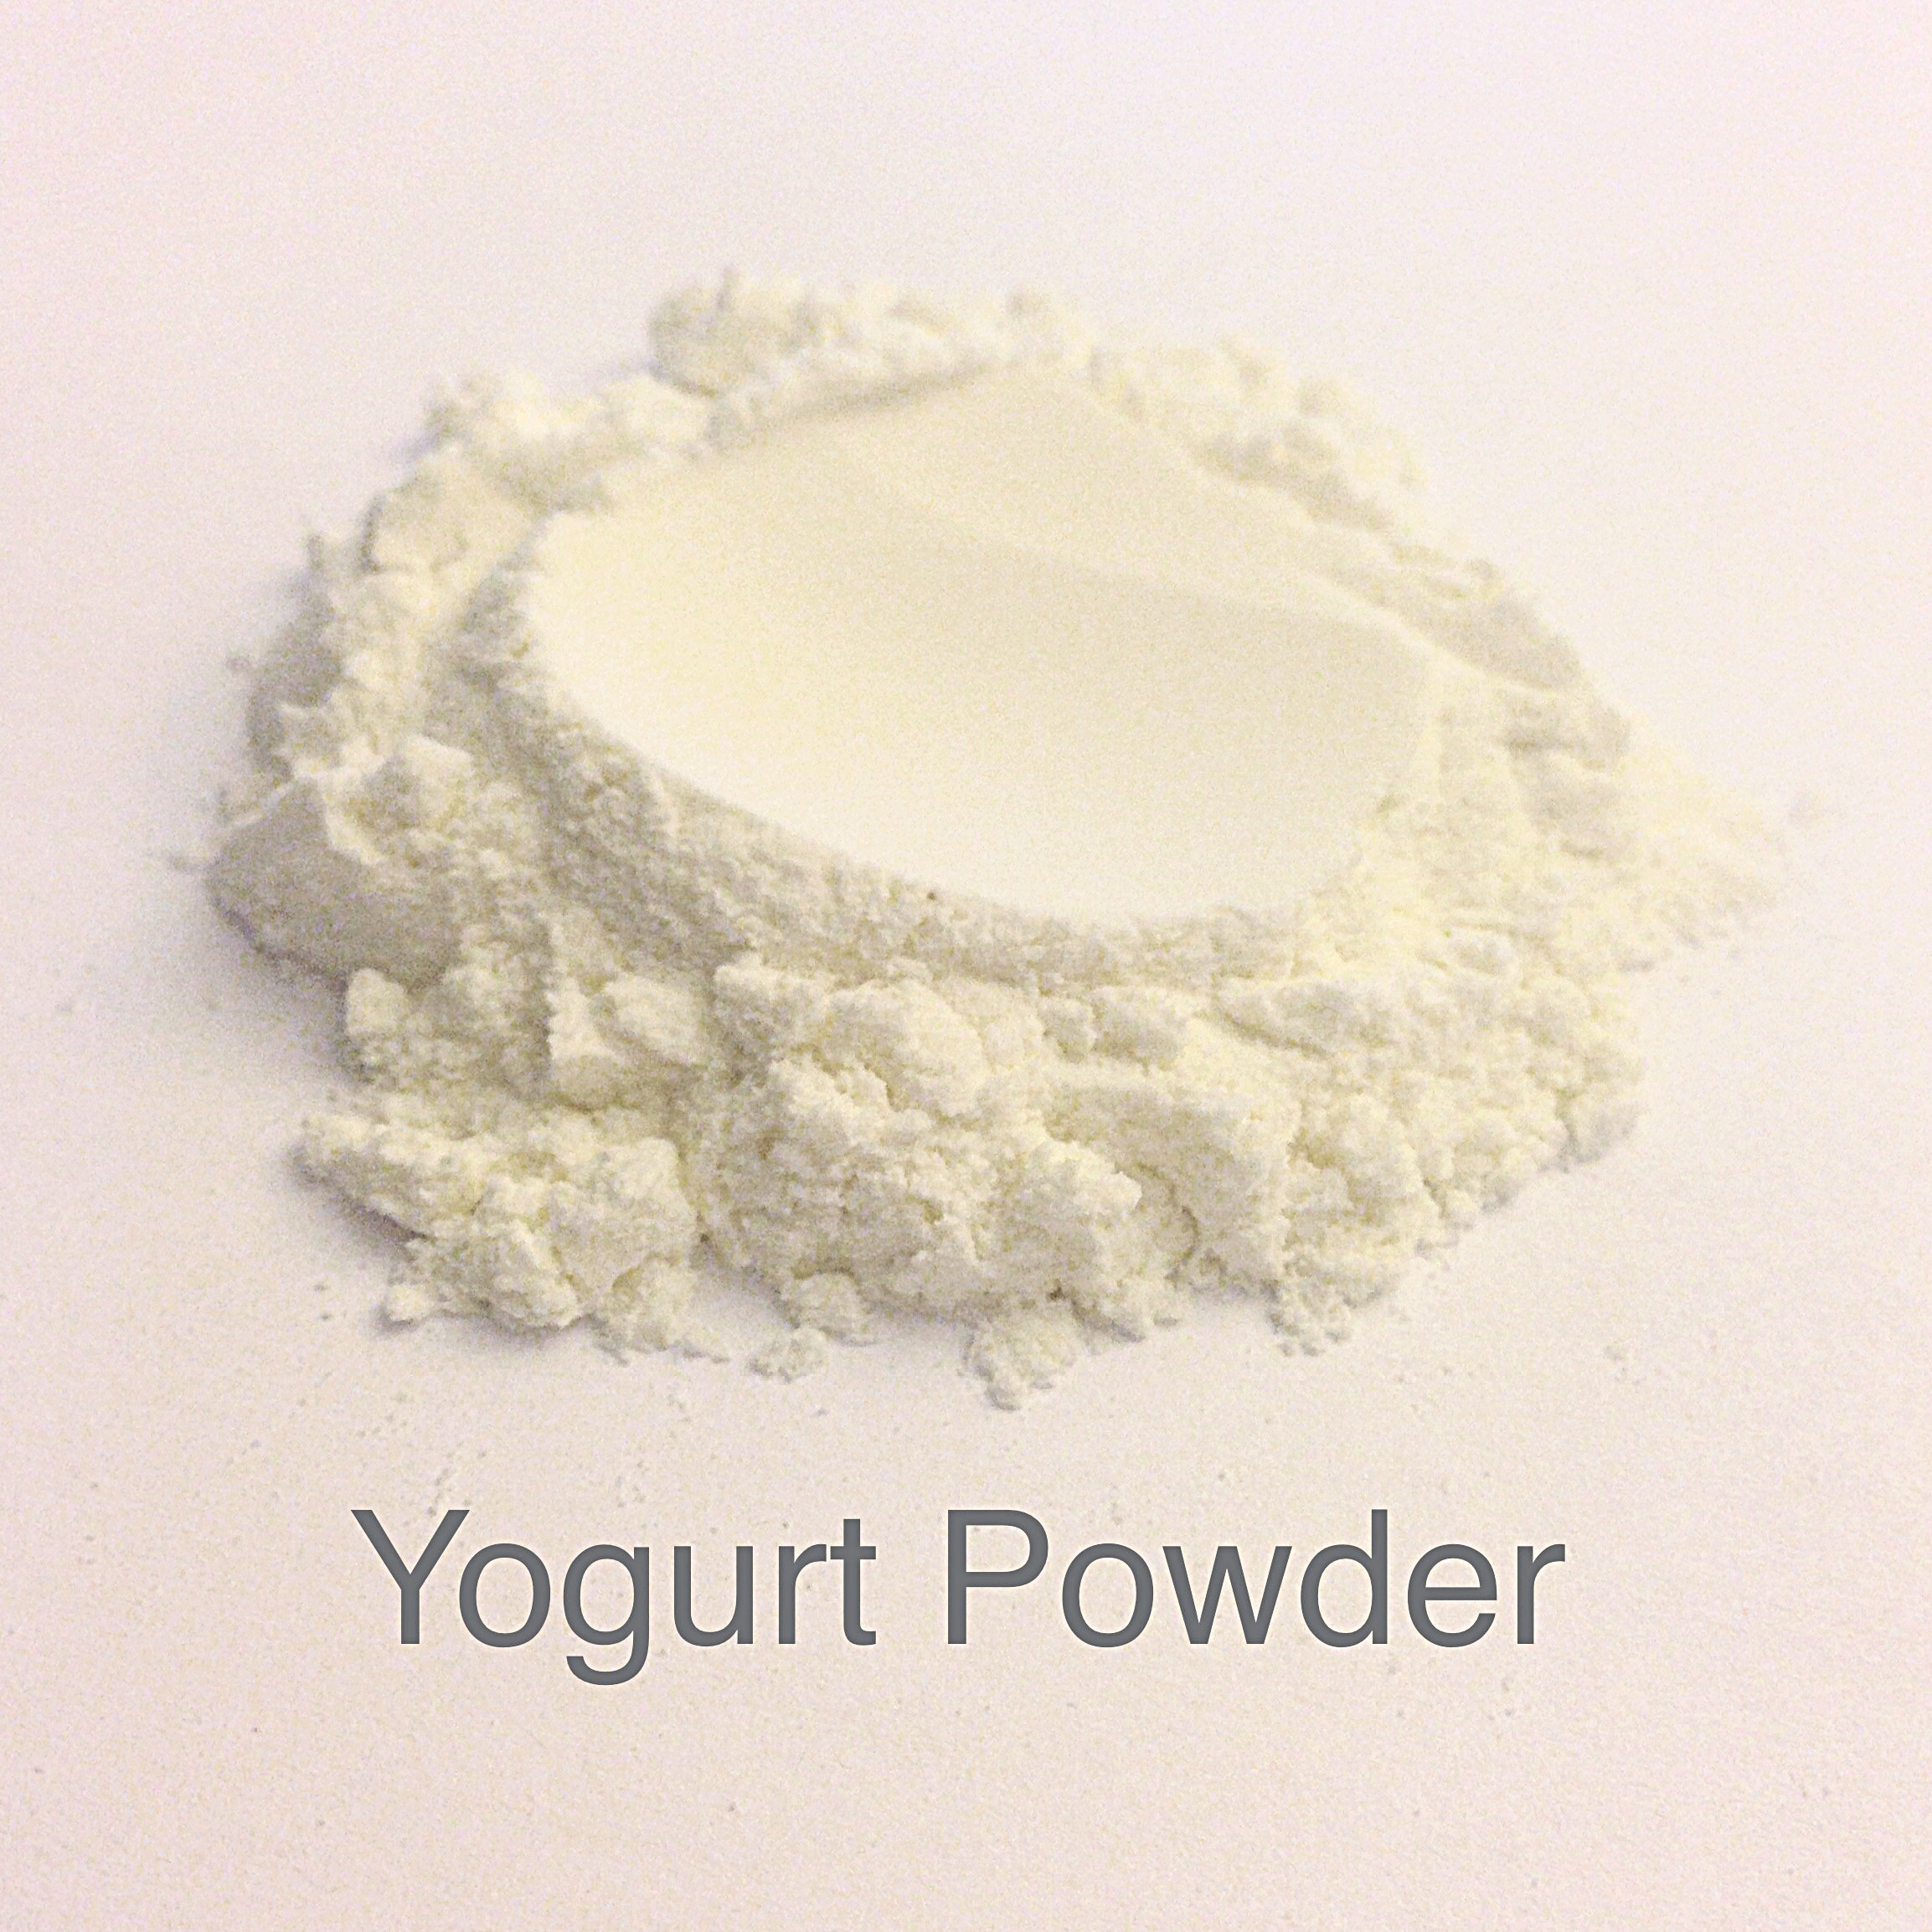 YOGHURT POWDER